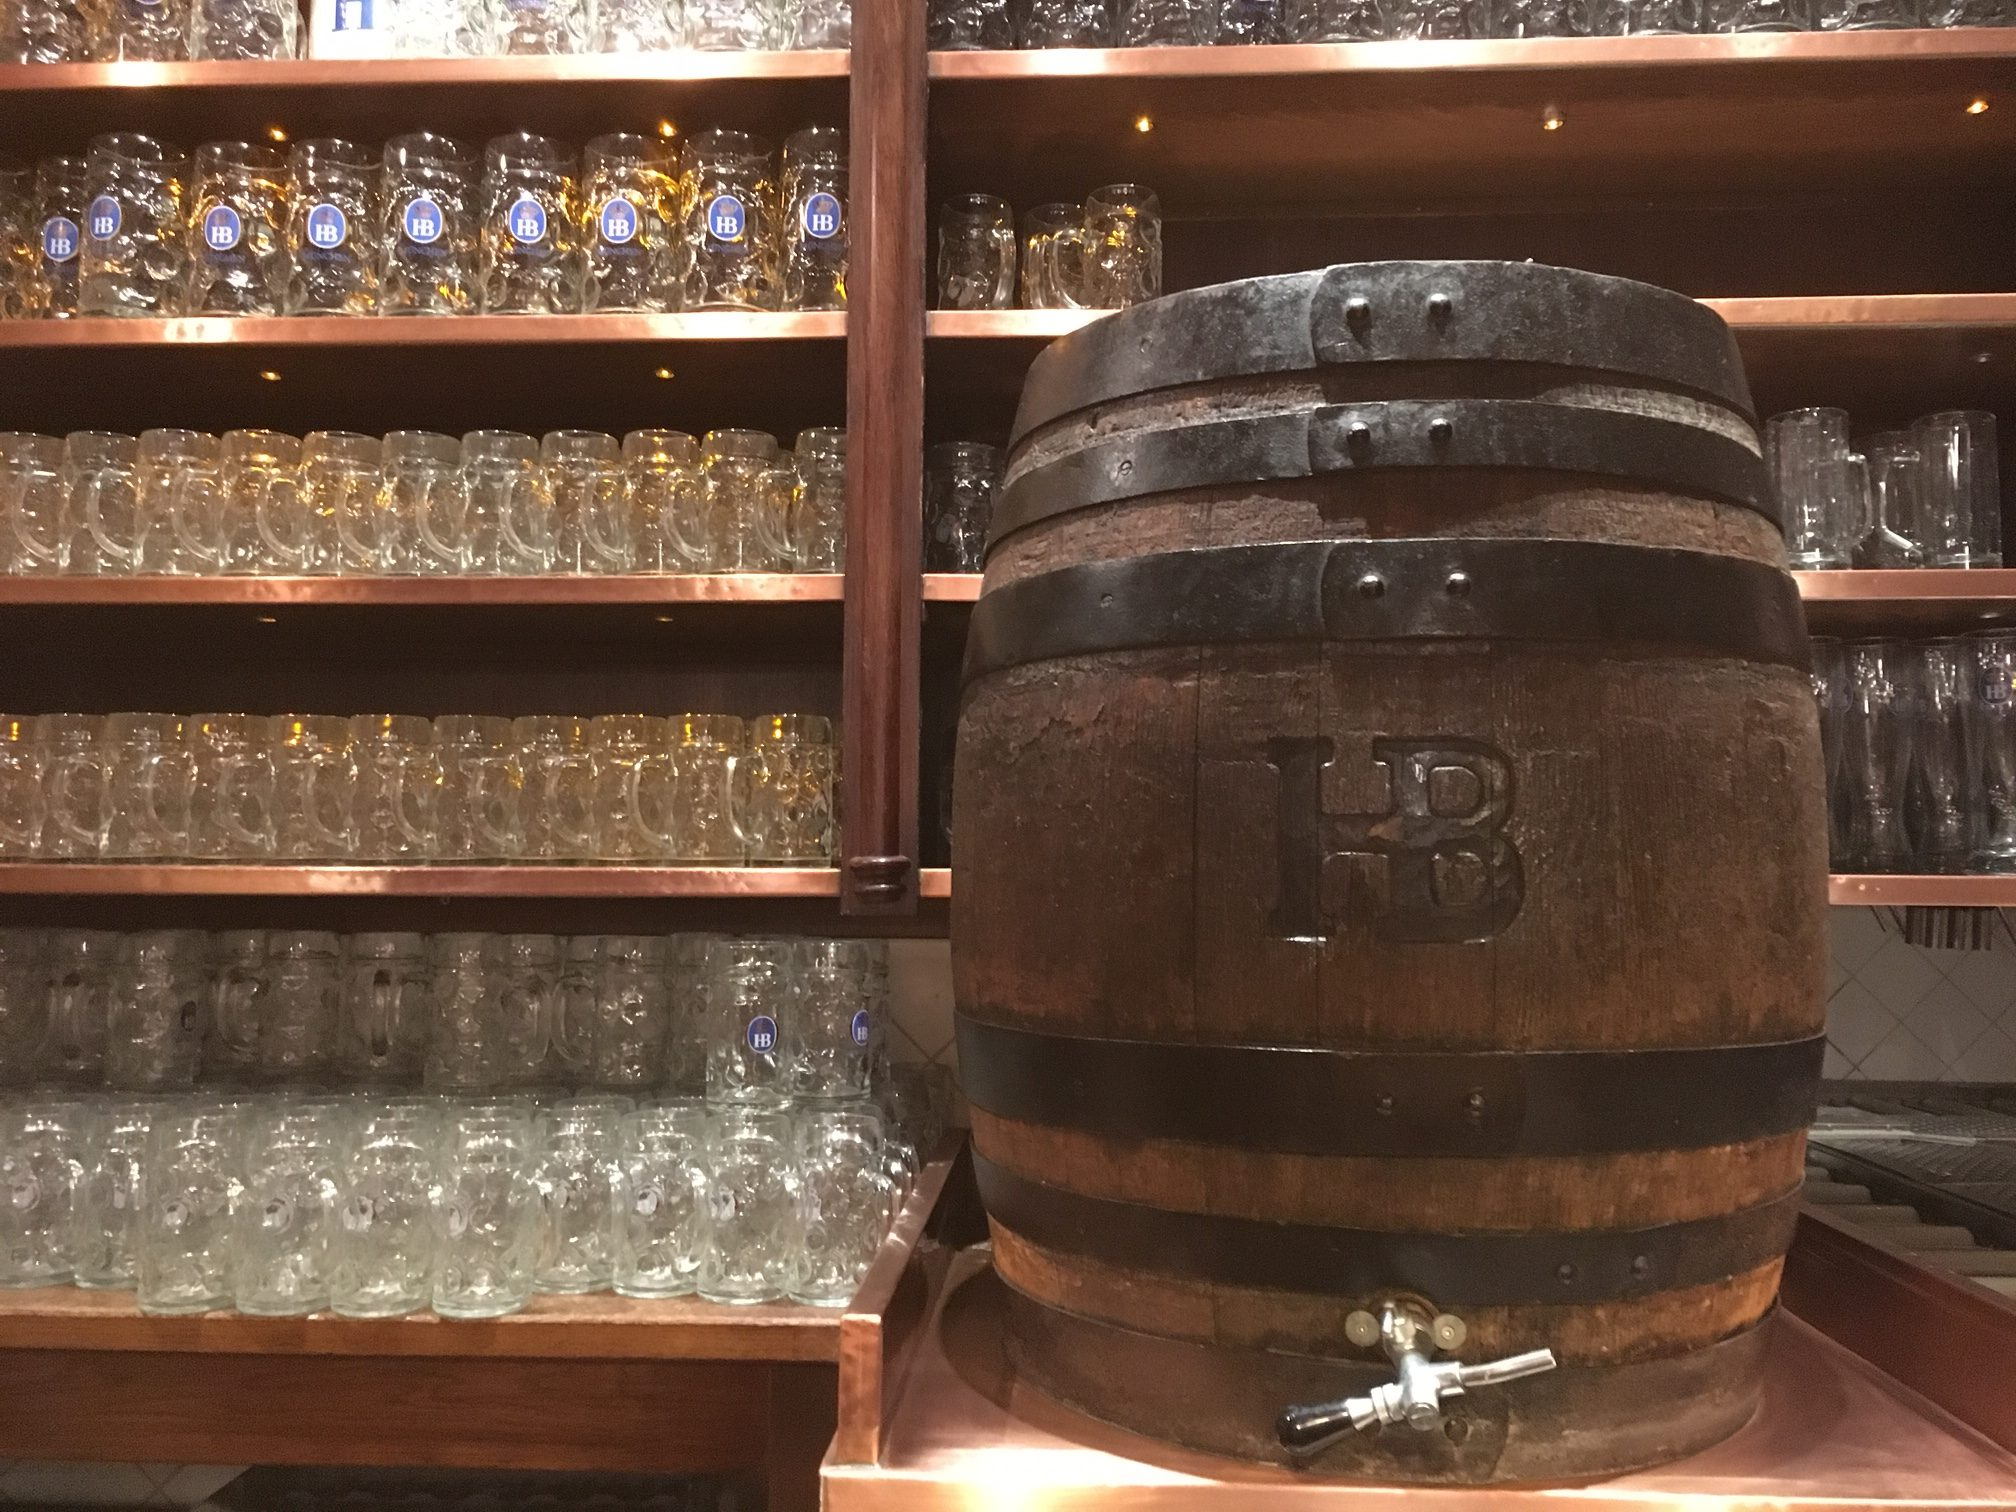 A wooden keg on the bar at Hofbrauhaus Munchen. (photo by Cat Stelzer)